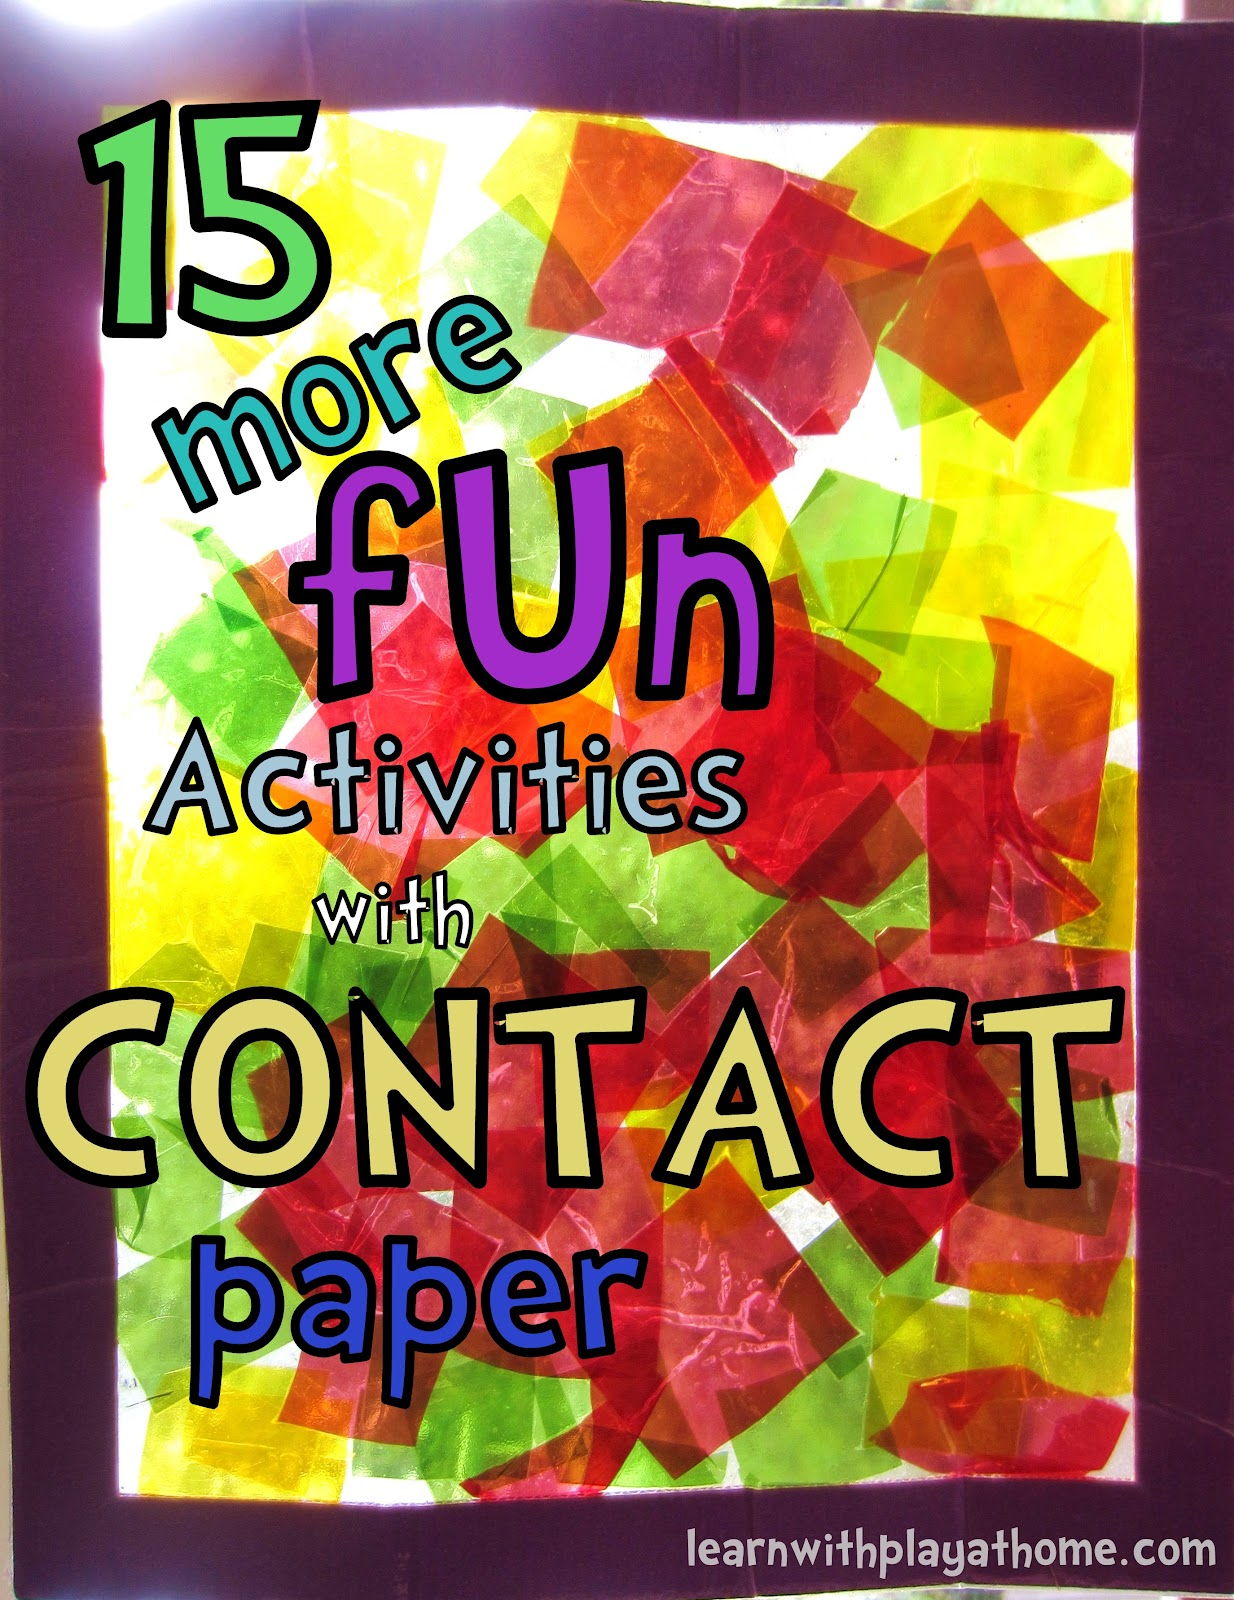 Learn With Play At Home 15 More Fun Activities With Contact Paper